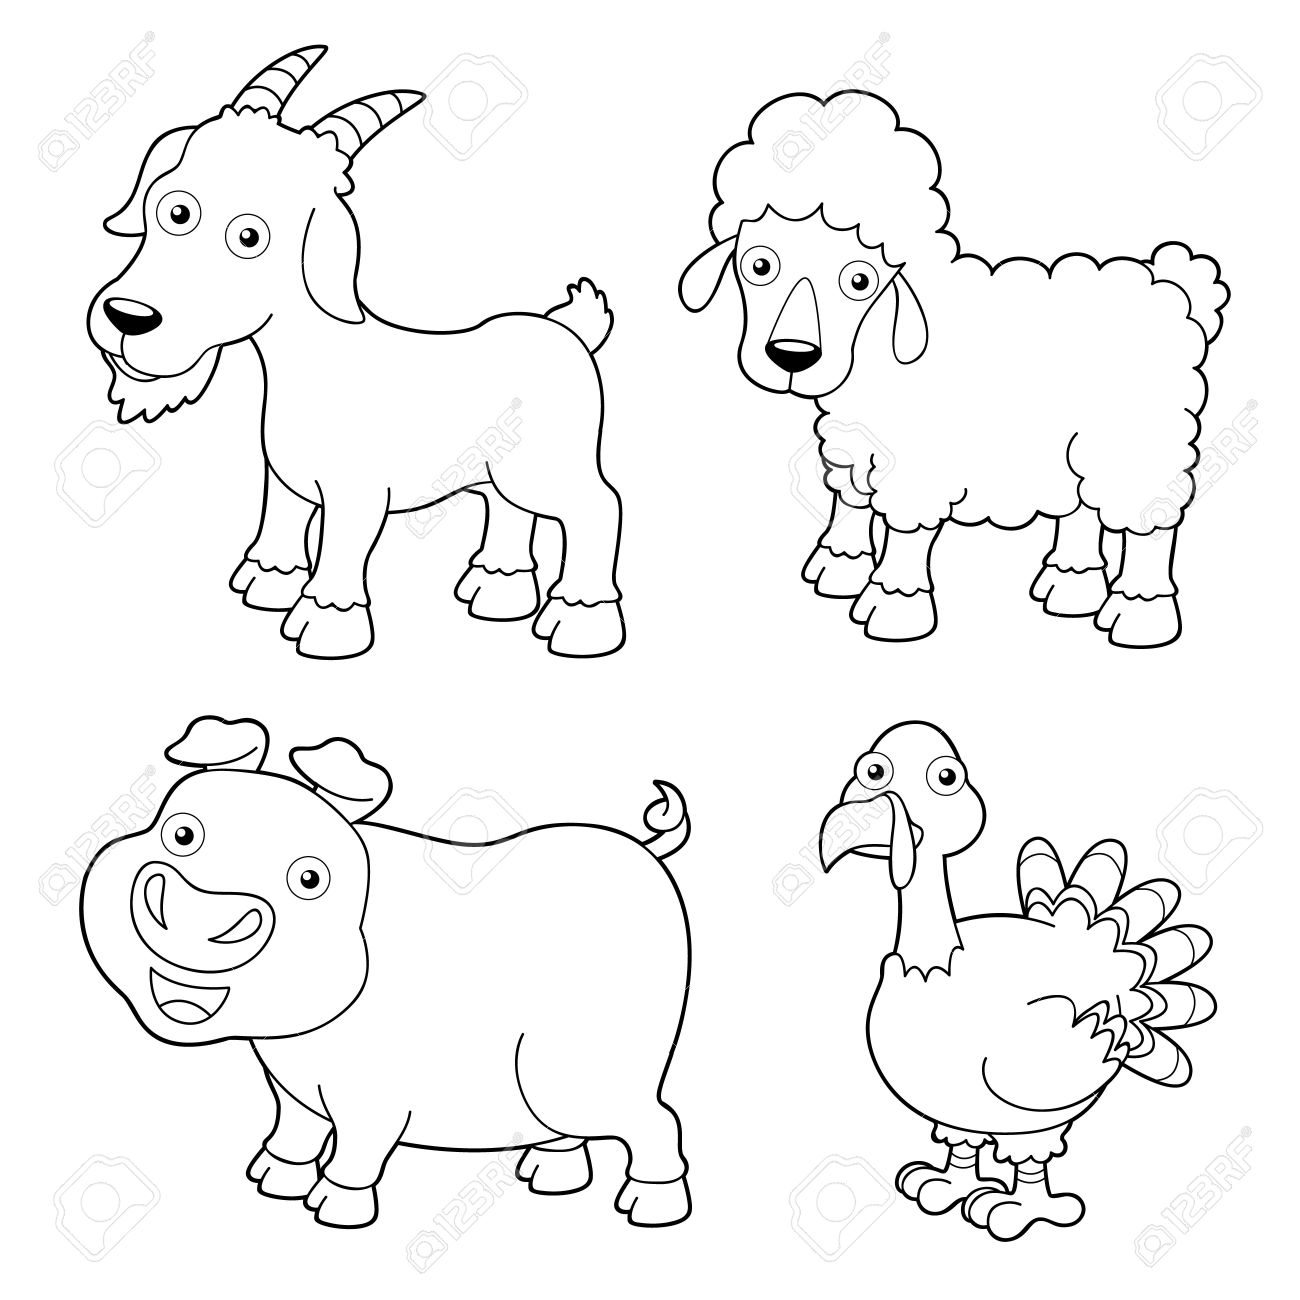 Kids Coloring Pages Farm Animals At Getcolorings